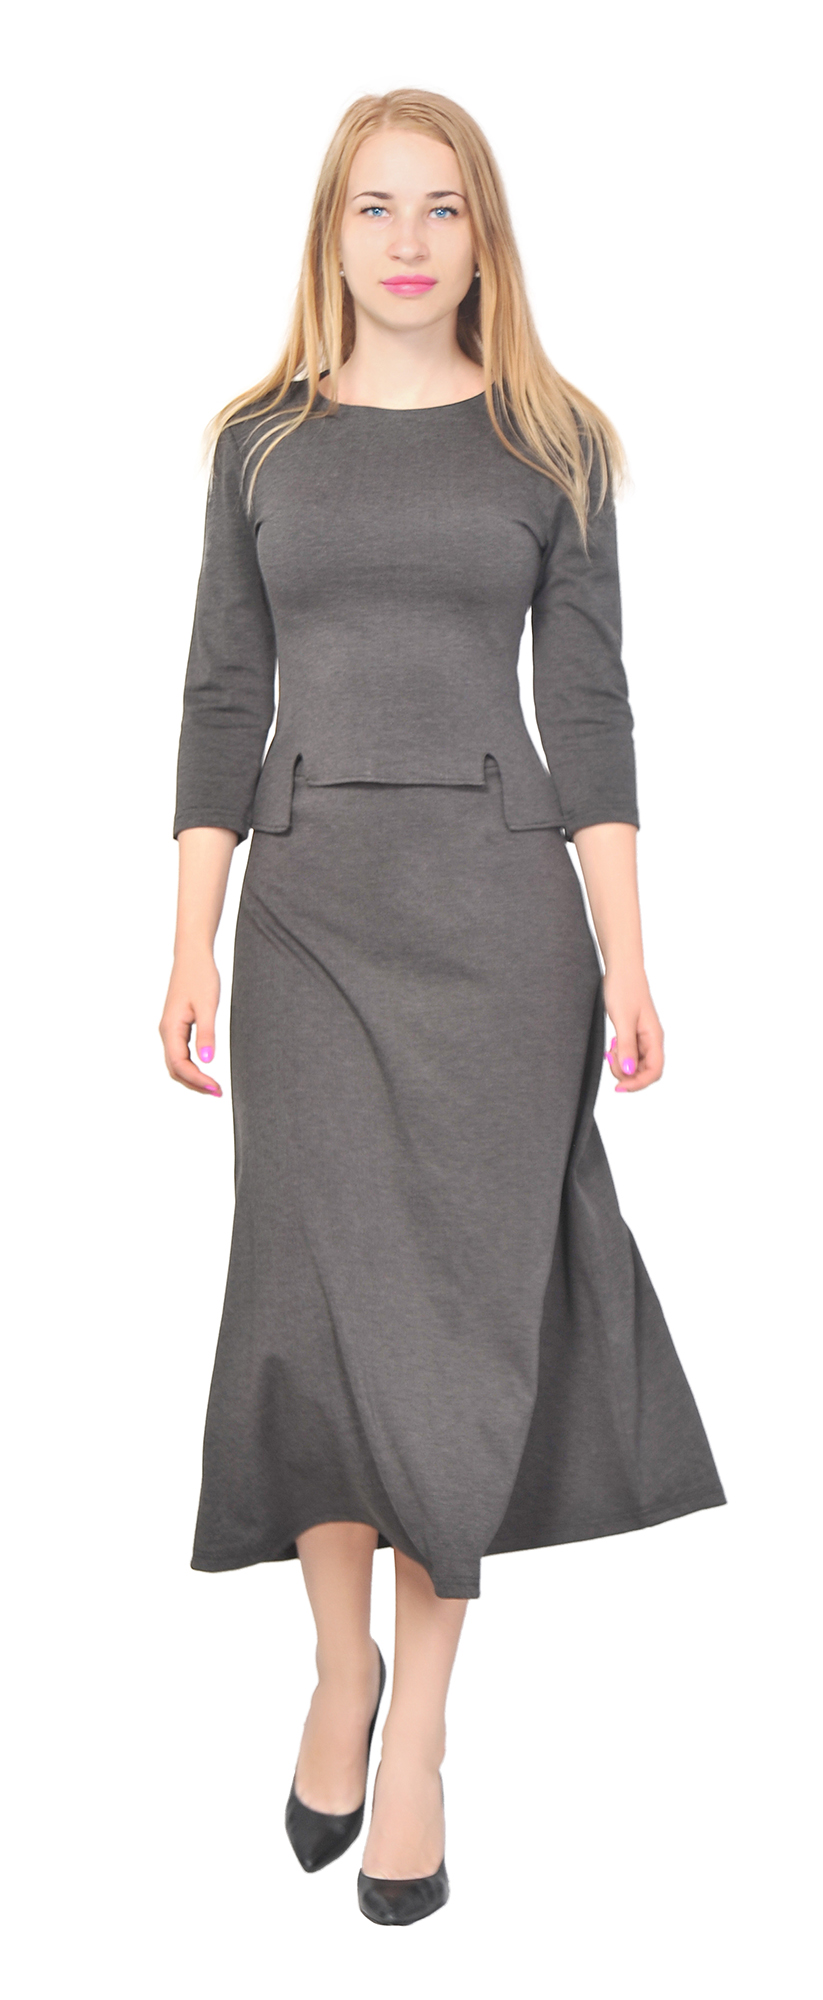 Stand out in a stylish women's A-line skirt from Dillard's.